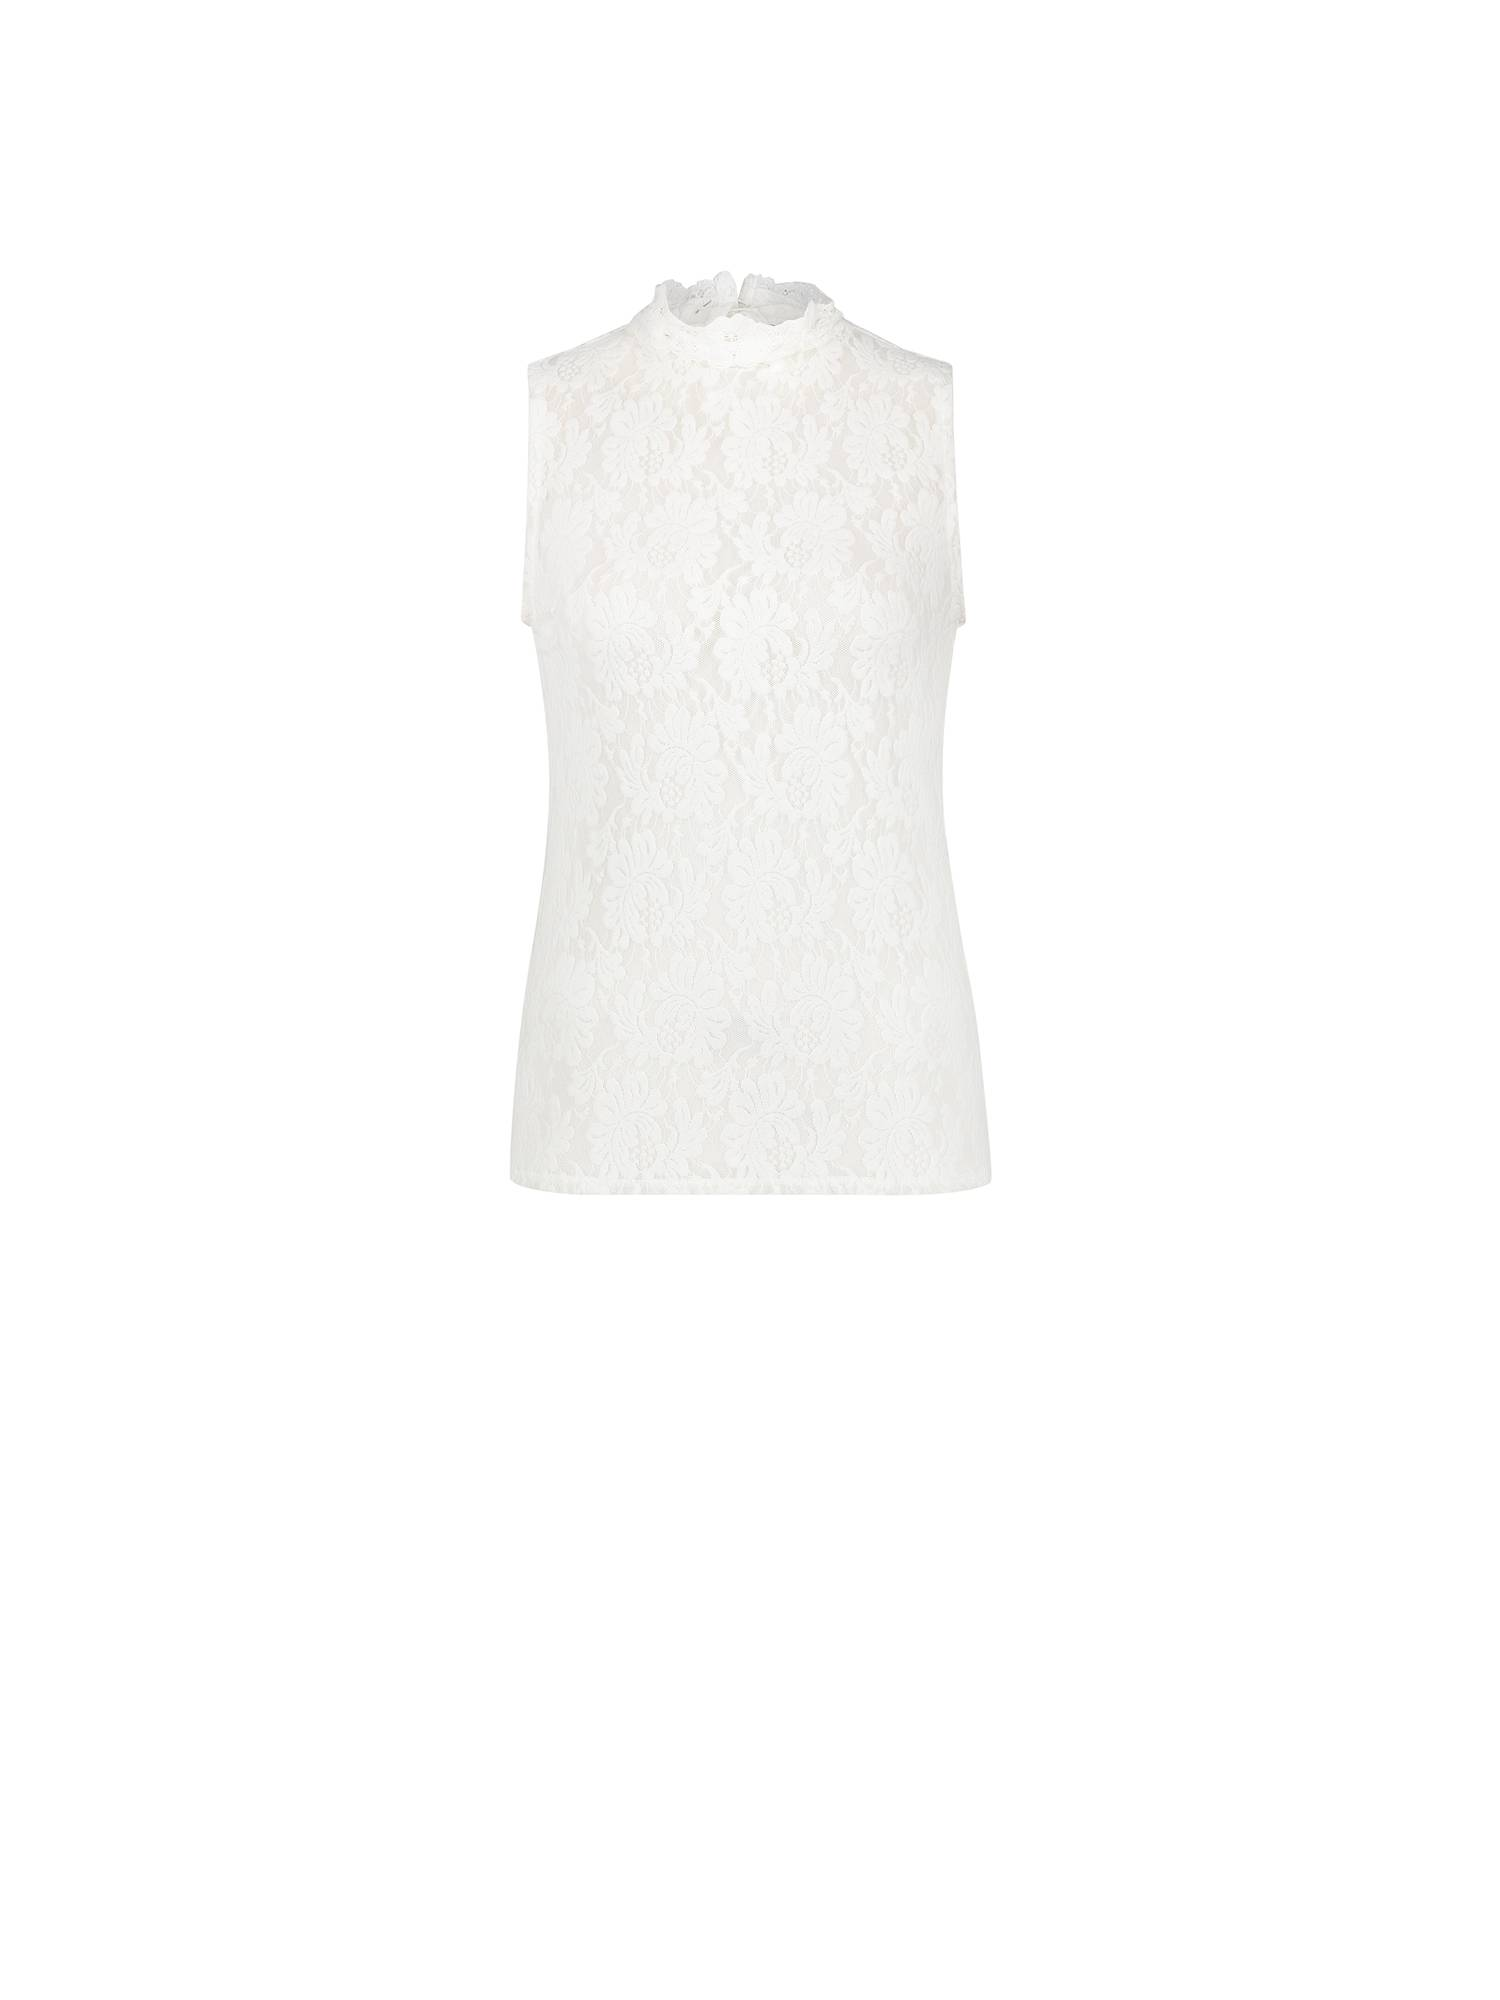 Studio Anneloes 05452 Marilene lace top 1100 off white | Pico Women Fashion & More